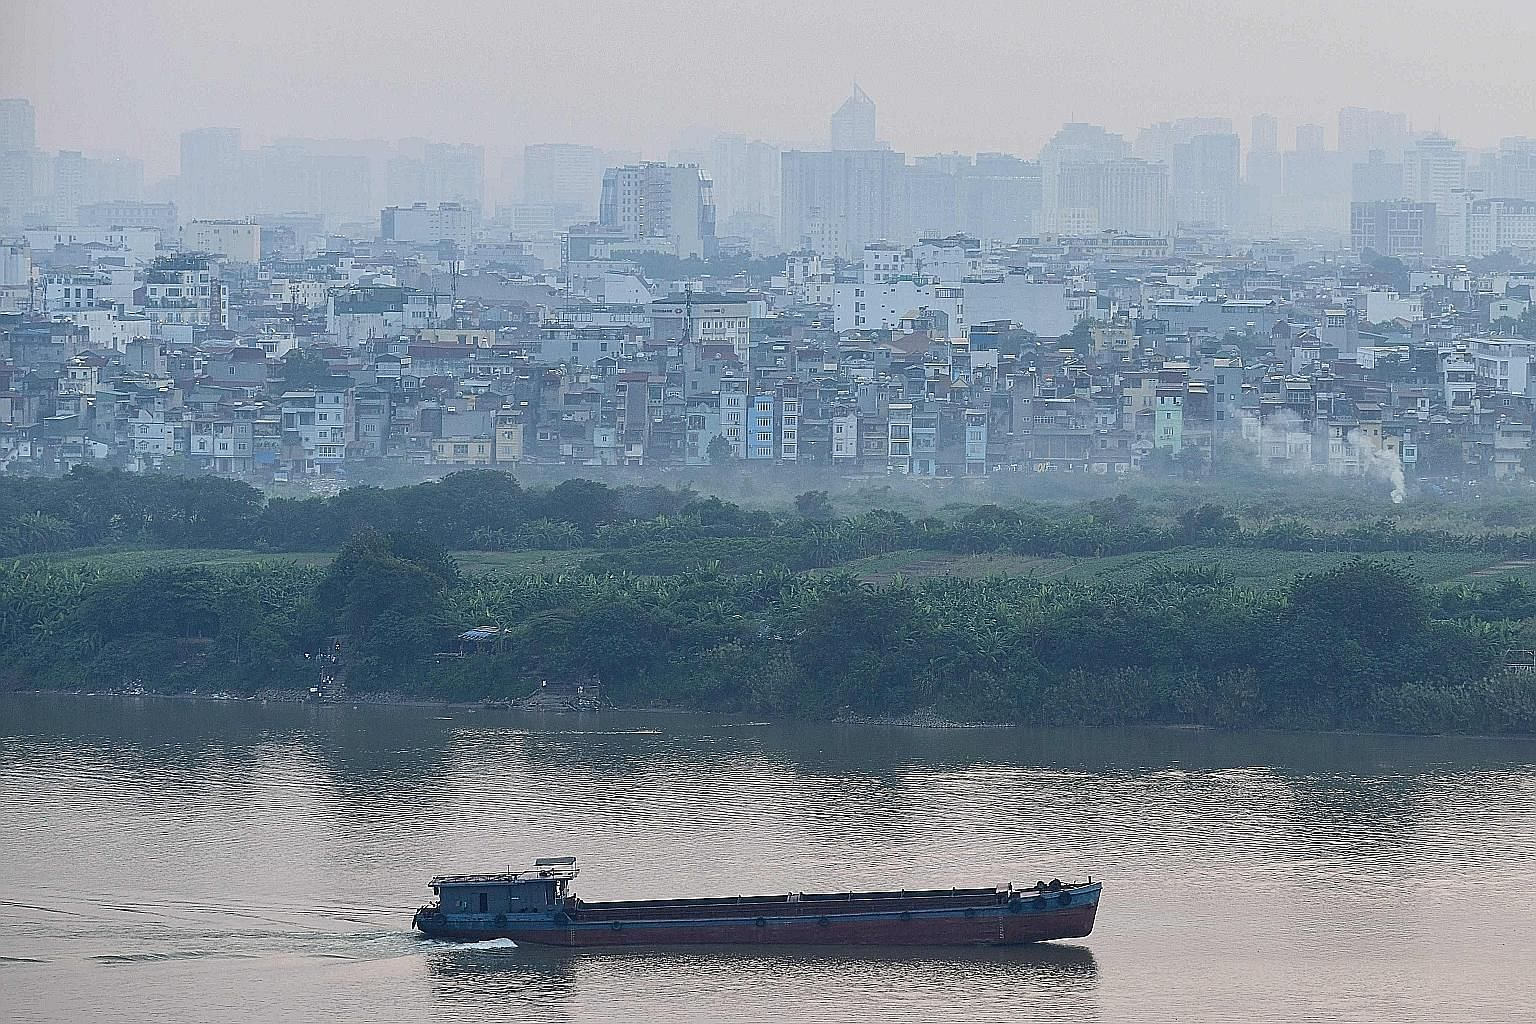 Smog over Hanoi's skyline last month. Vietnam is planning to develop an air quality app with information from state air-monitoring posts - a good prod for firmer action against emissions, says the writer.